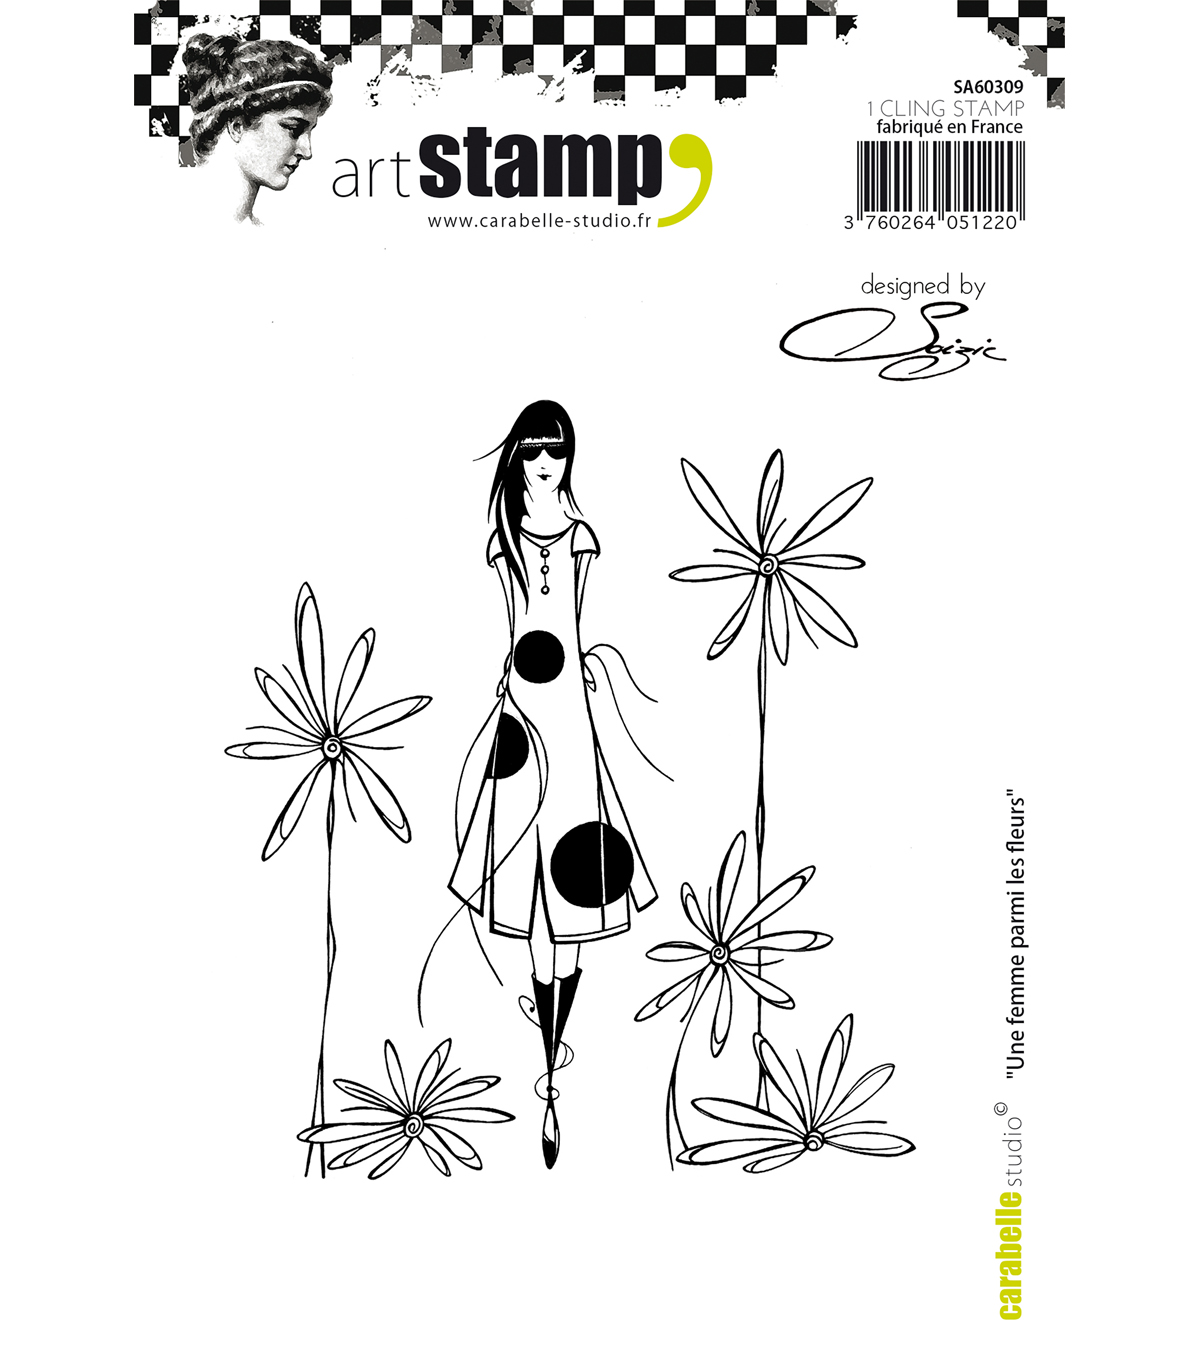 Carabelle Studio Cling Stamp A6 By Soizic-A Woman Among The Flowers